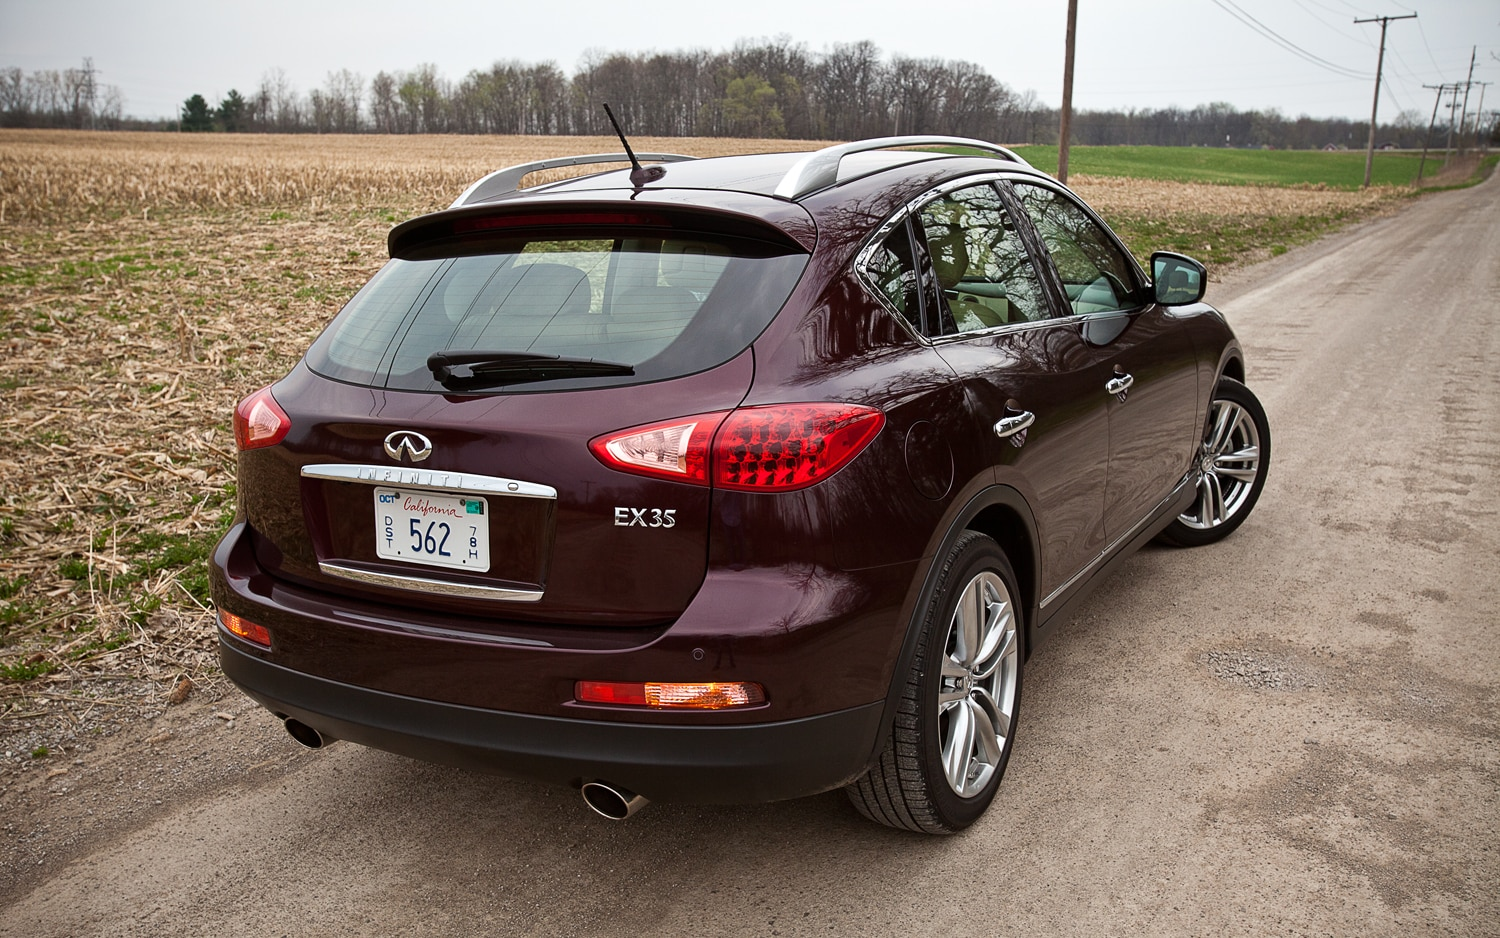 We spent a year with the infiniti ex35